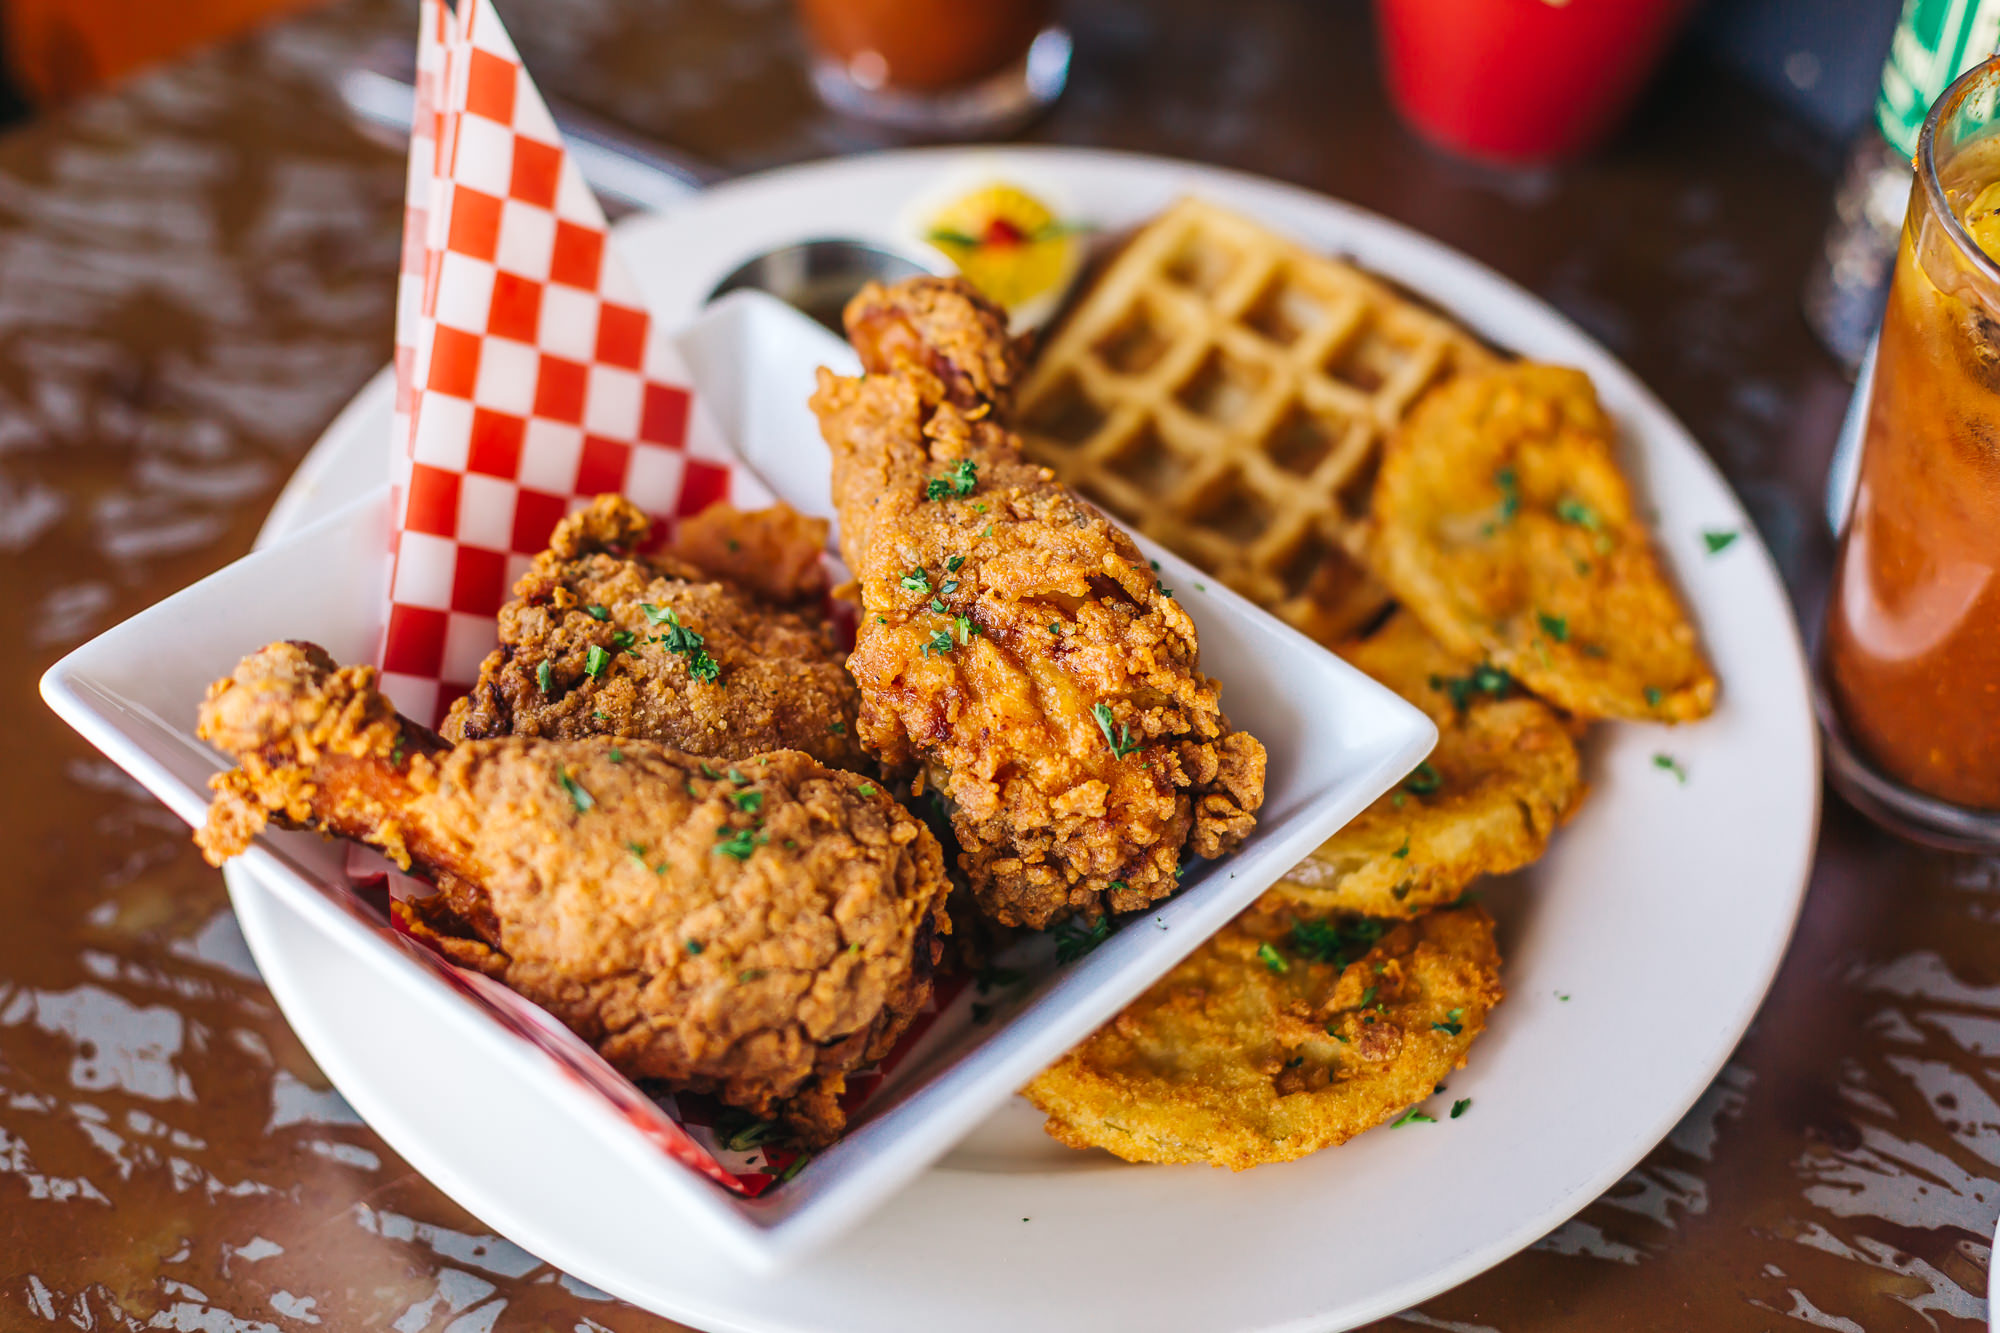 The popular fried chicken and waffles is definitely one of our favorite dishes